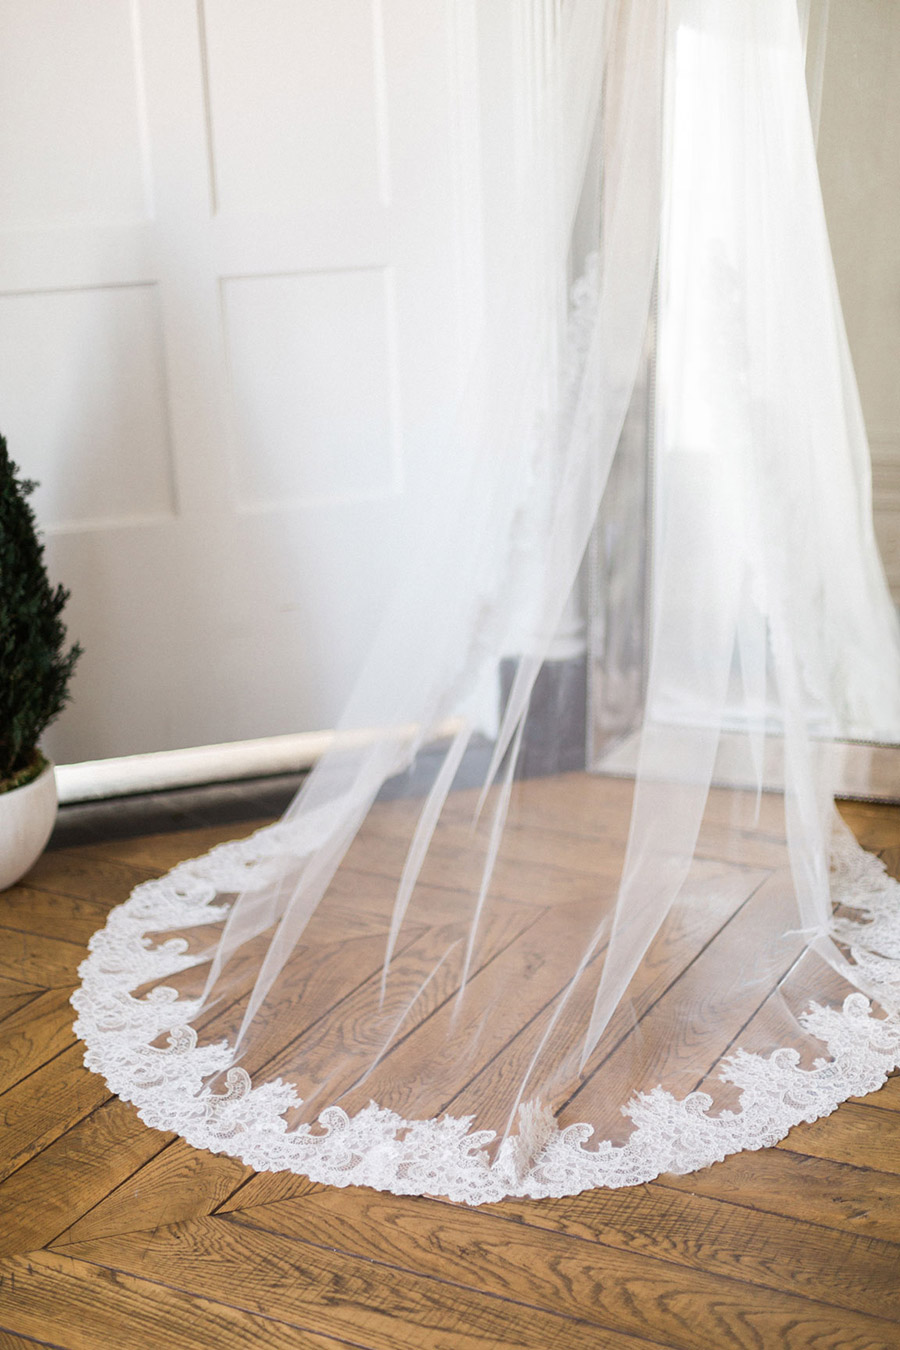 bel aire bridal accessories lace veil jen fu photography 2016 chloe mint styled wedding shoot culver hotel mv